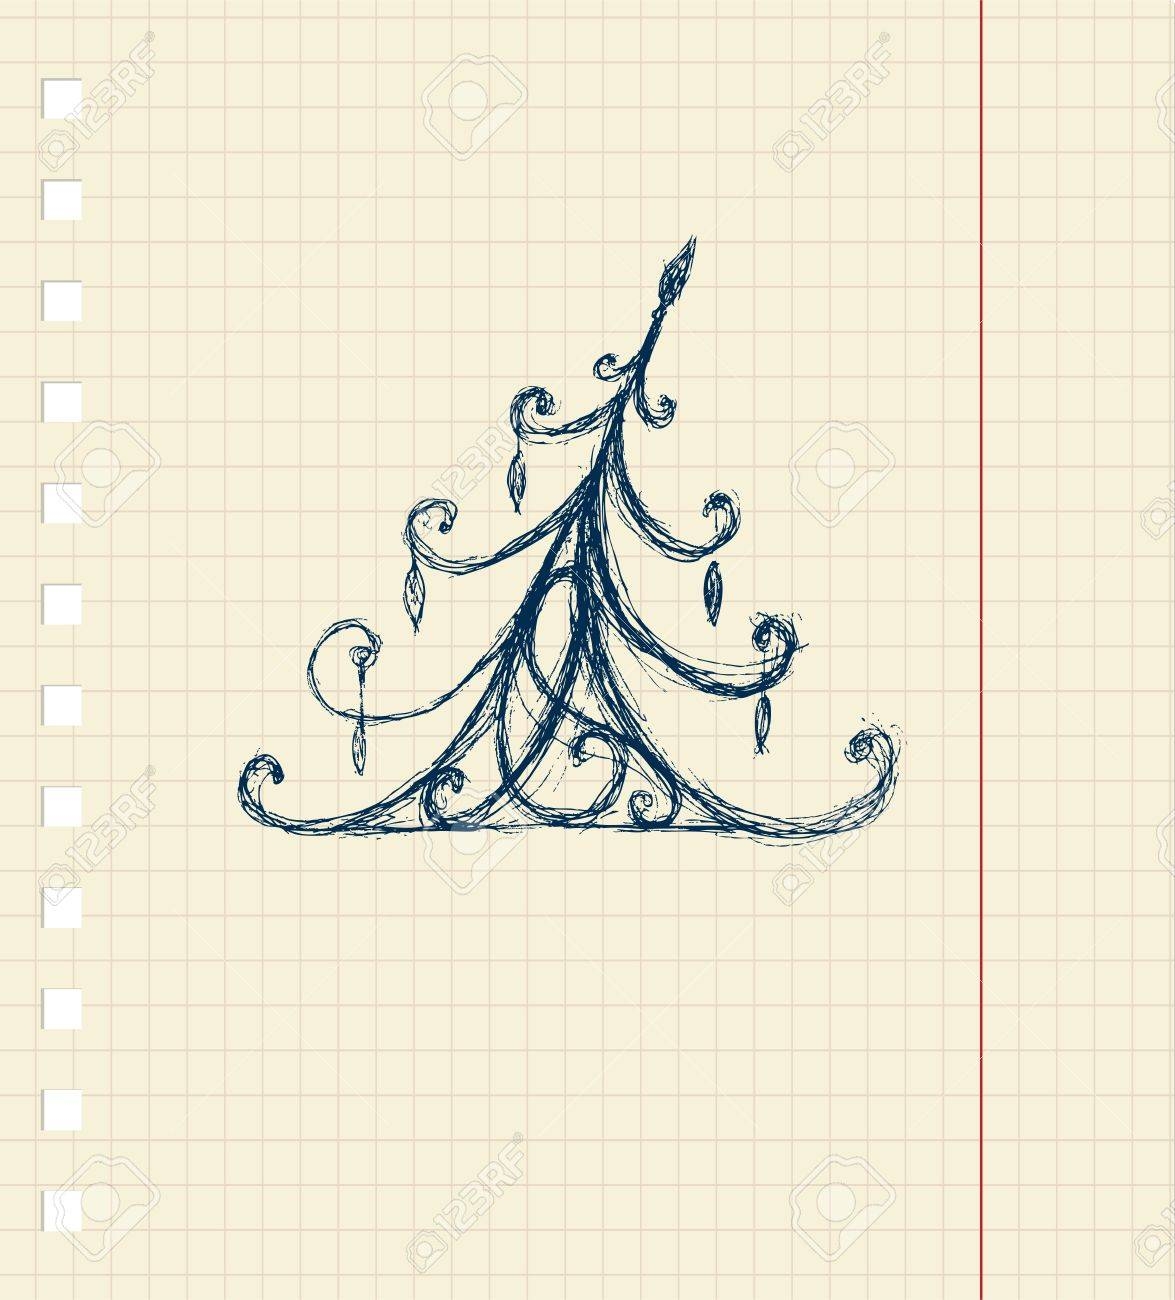 Sketch of christmas pine ornament on notebook sheet Stock Vector - 8362517